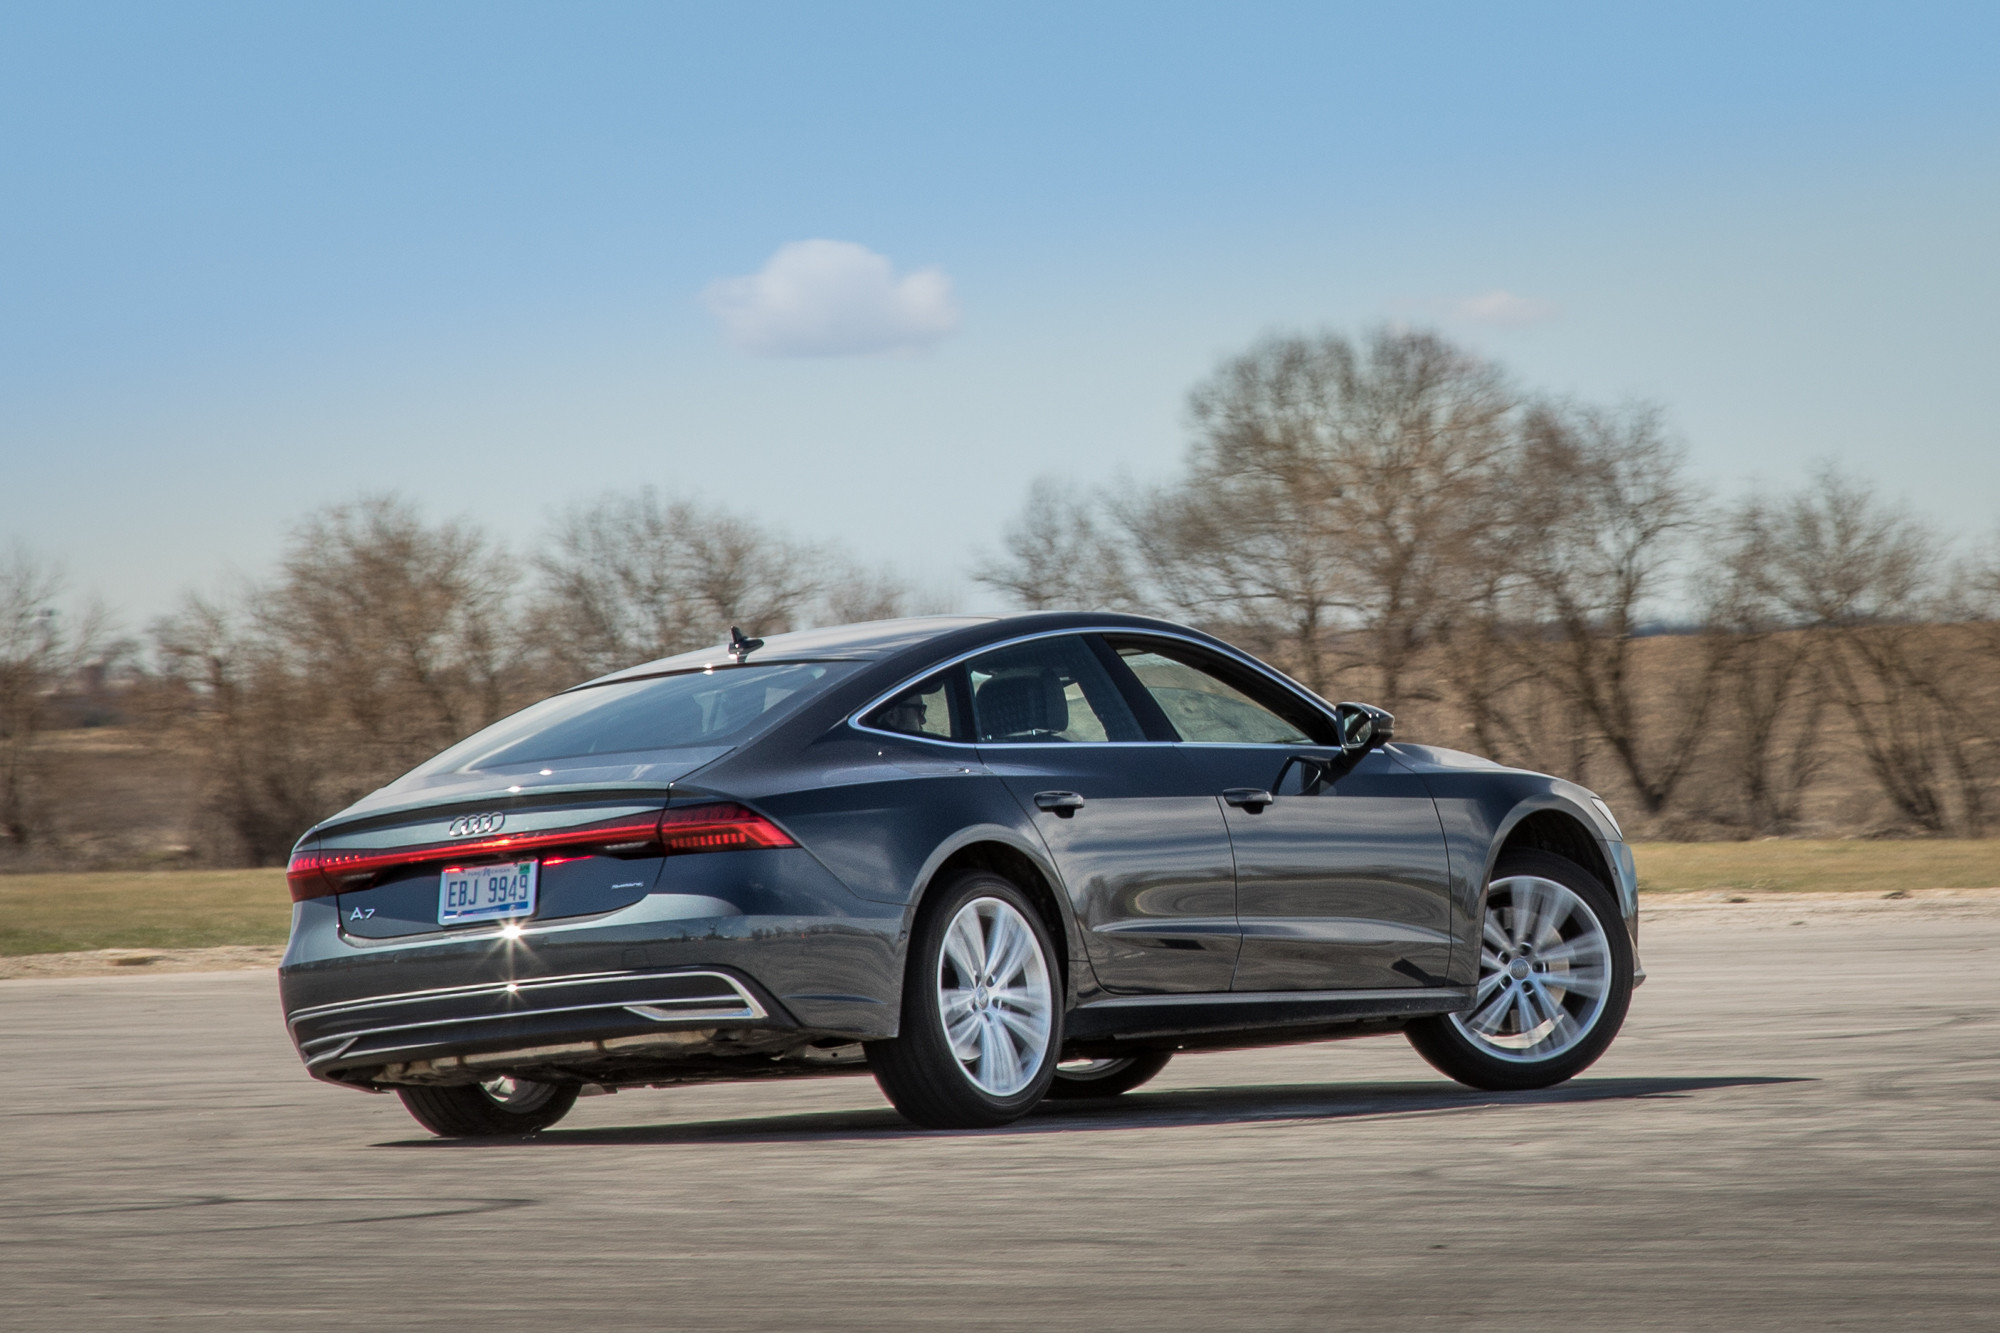 2019 Audi A7 Review: Tech Updates Keep Old Favorite Fresh